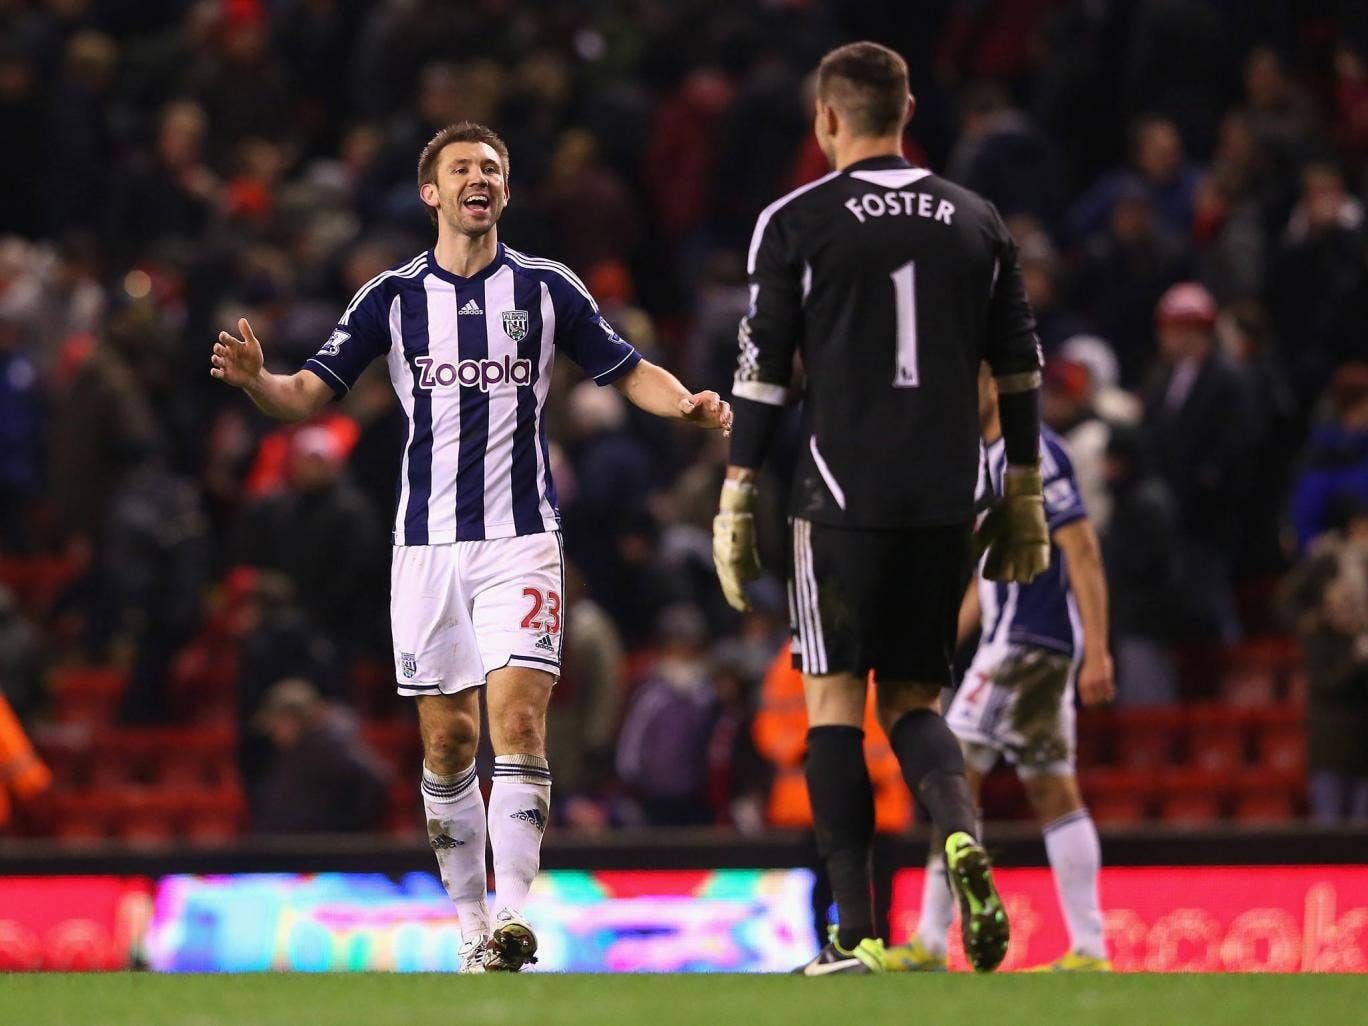 Gareth McAuley and Ben Foster of West Brom celebrate victory over Liverpool at Anfield